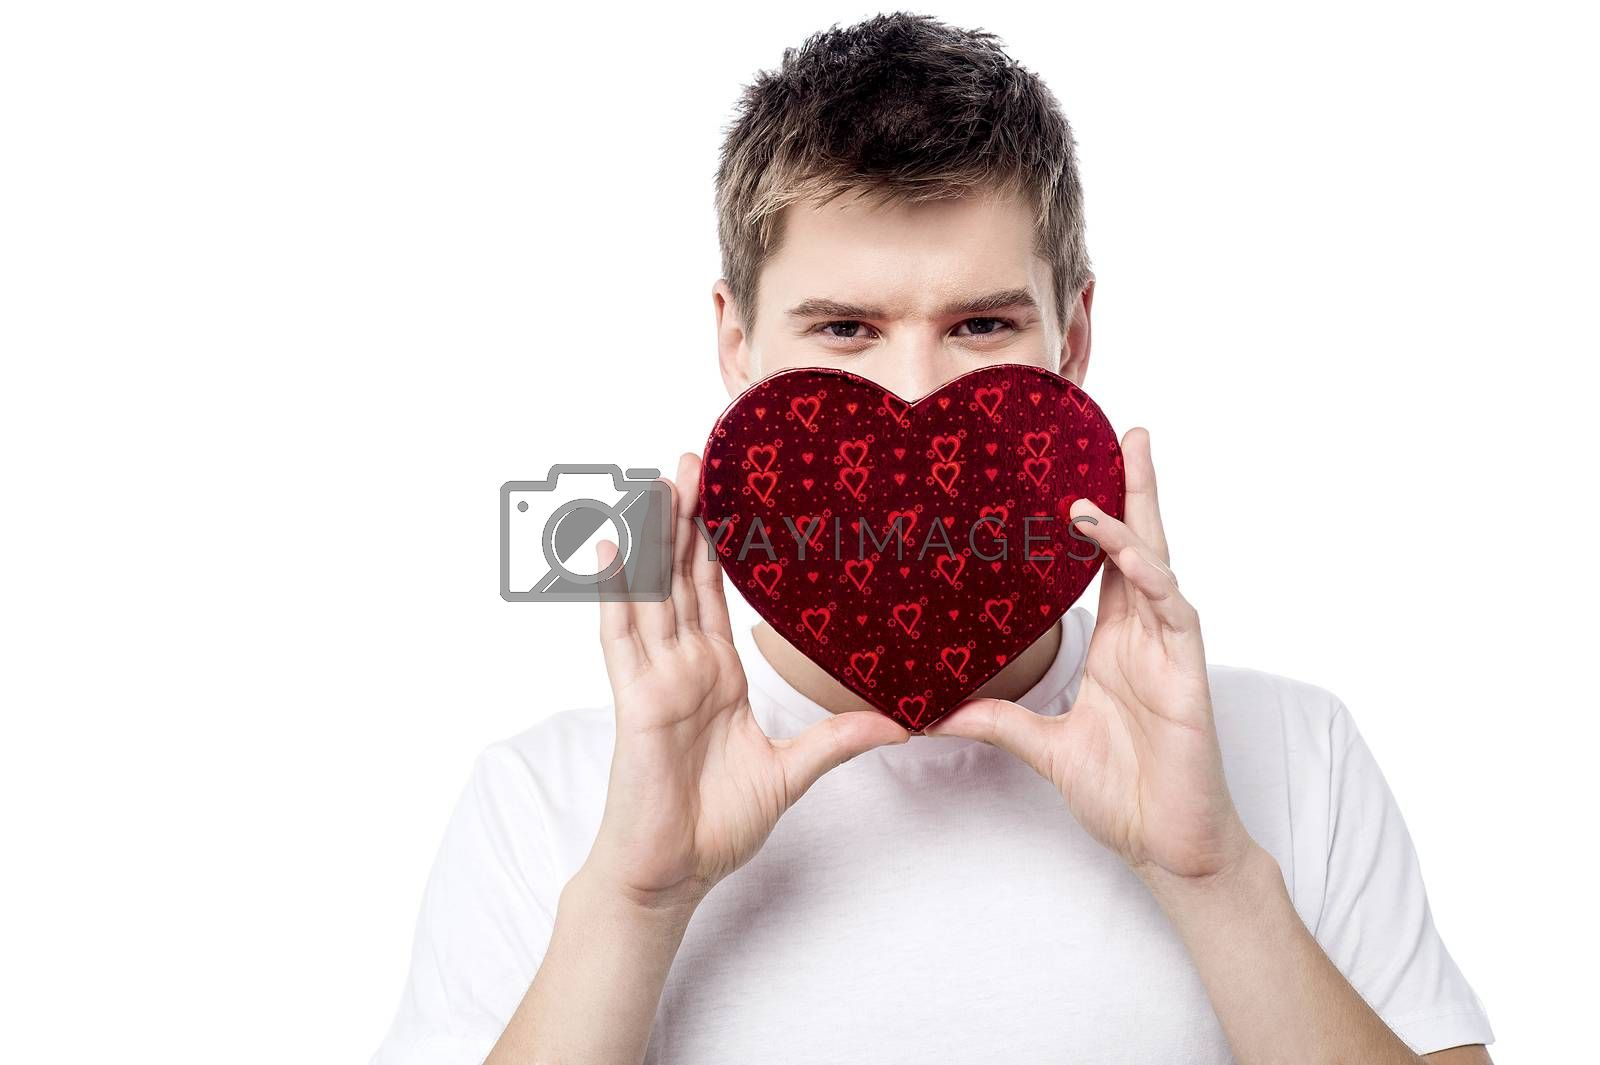 Royalty free image of My valentine gift to my dear! by stockyimages